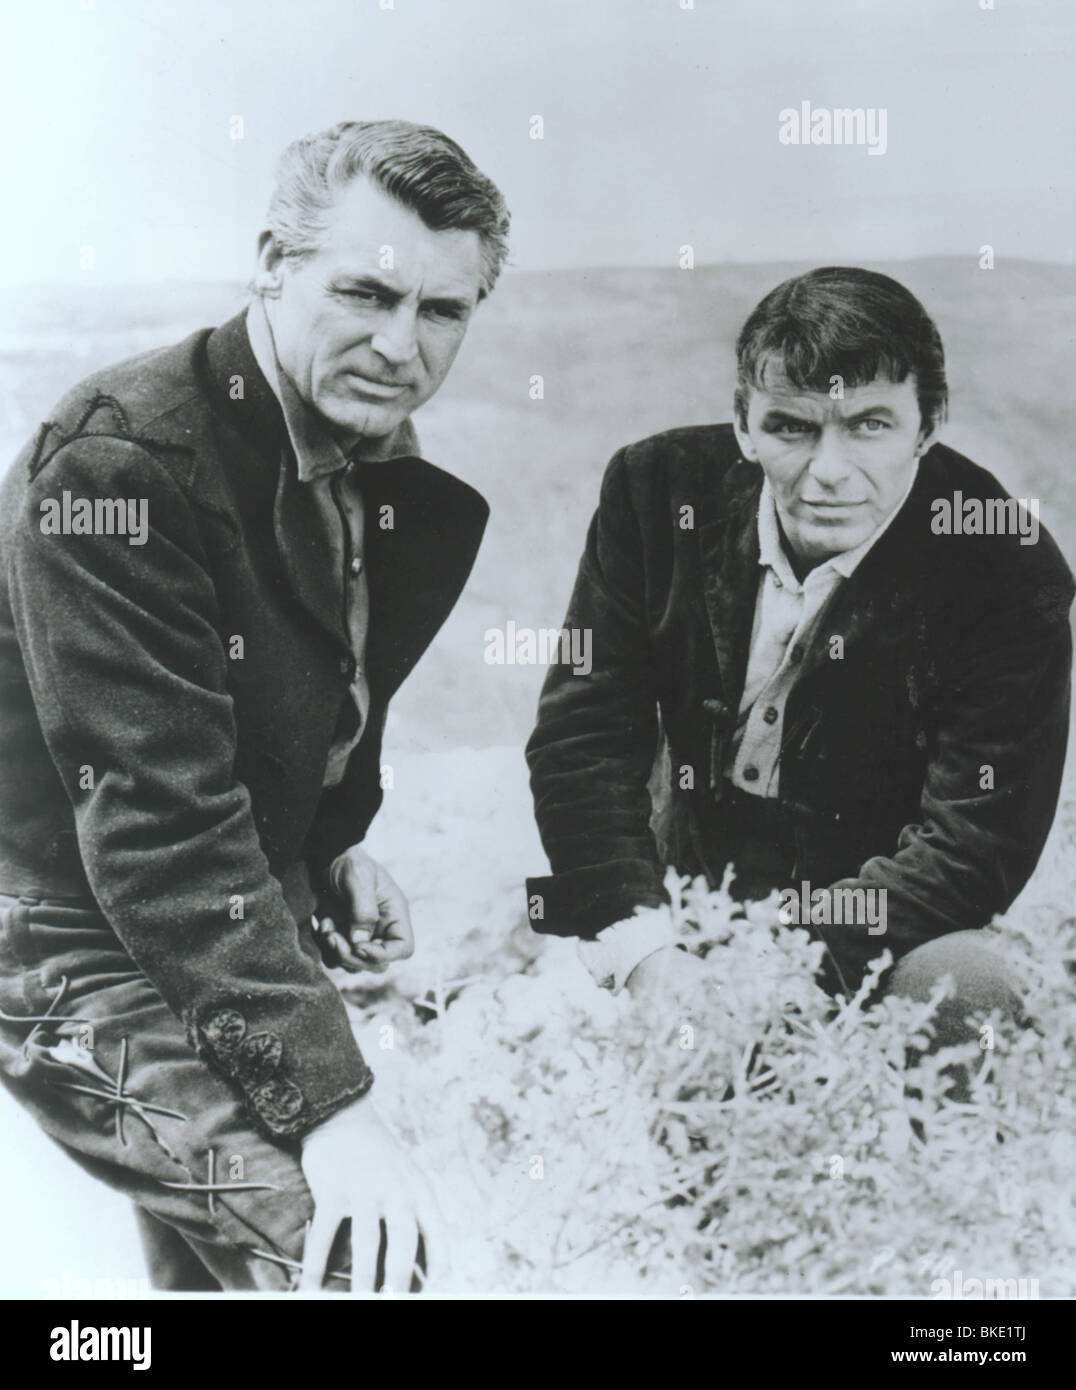 THE PRIDE AND THE PASSION (1957) CARY GRANT, FRANK SINATRA PRPS 007P - Stock Image